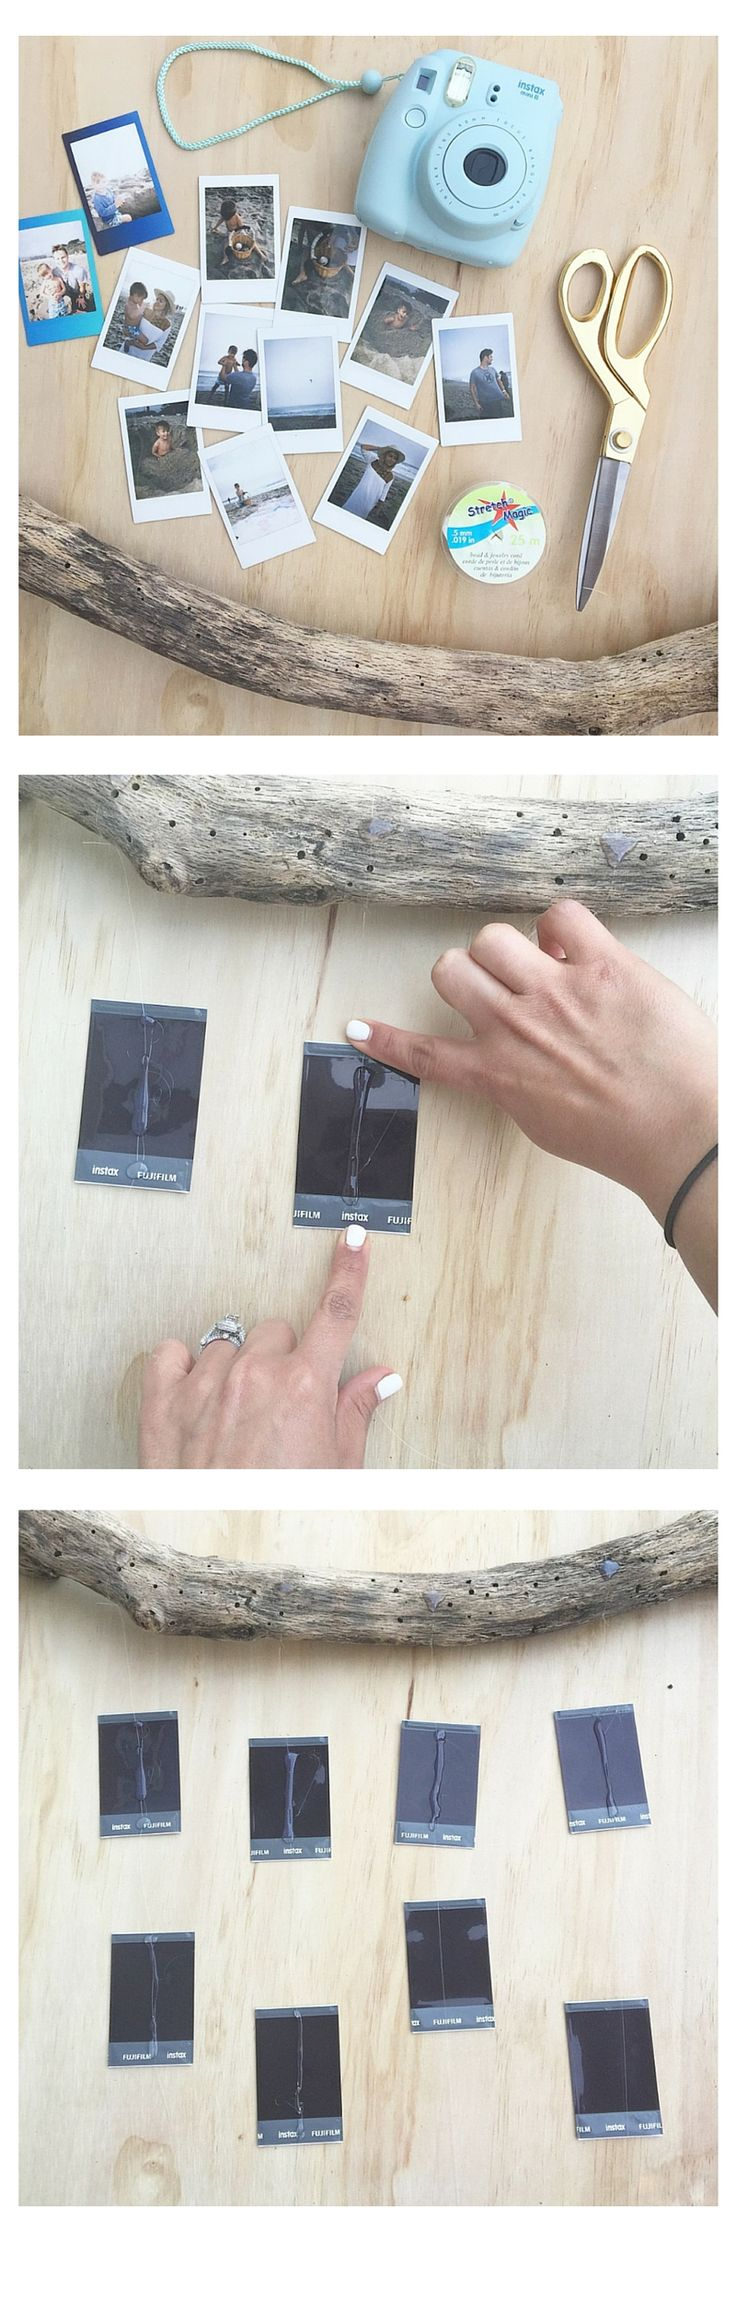 DIY Ideas for your INSTAX photos.  Like this drift wood photo mobile by @littlemissmomma.